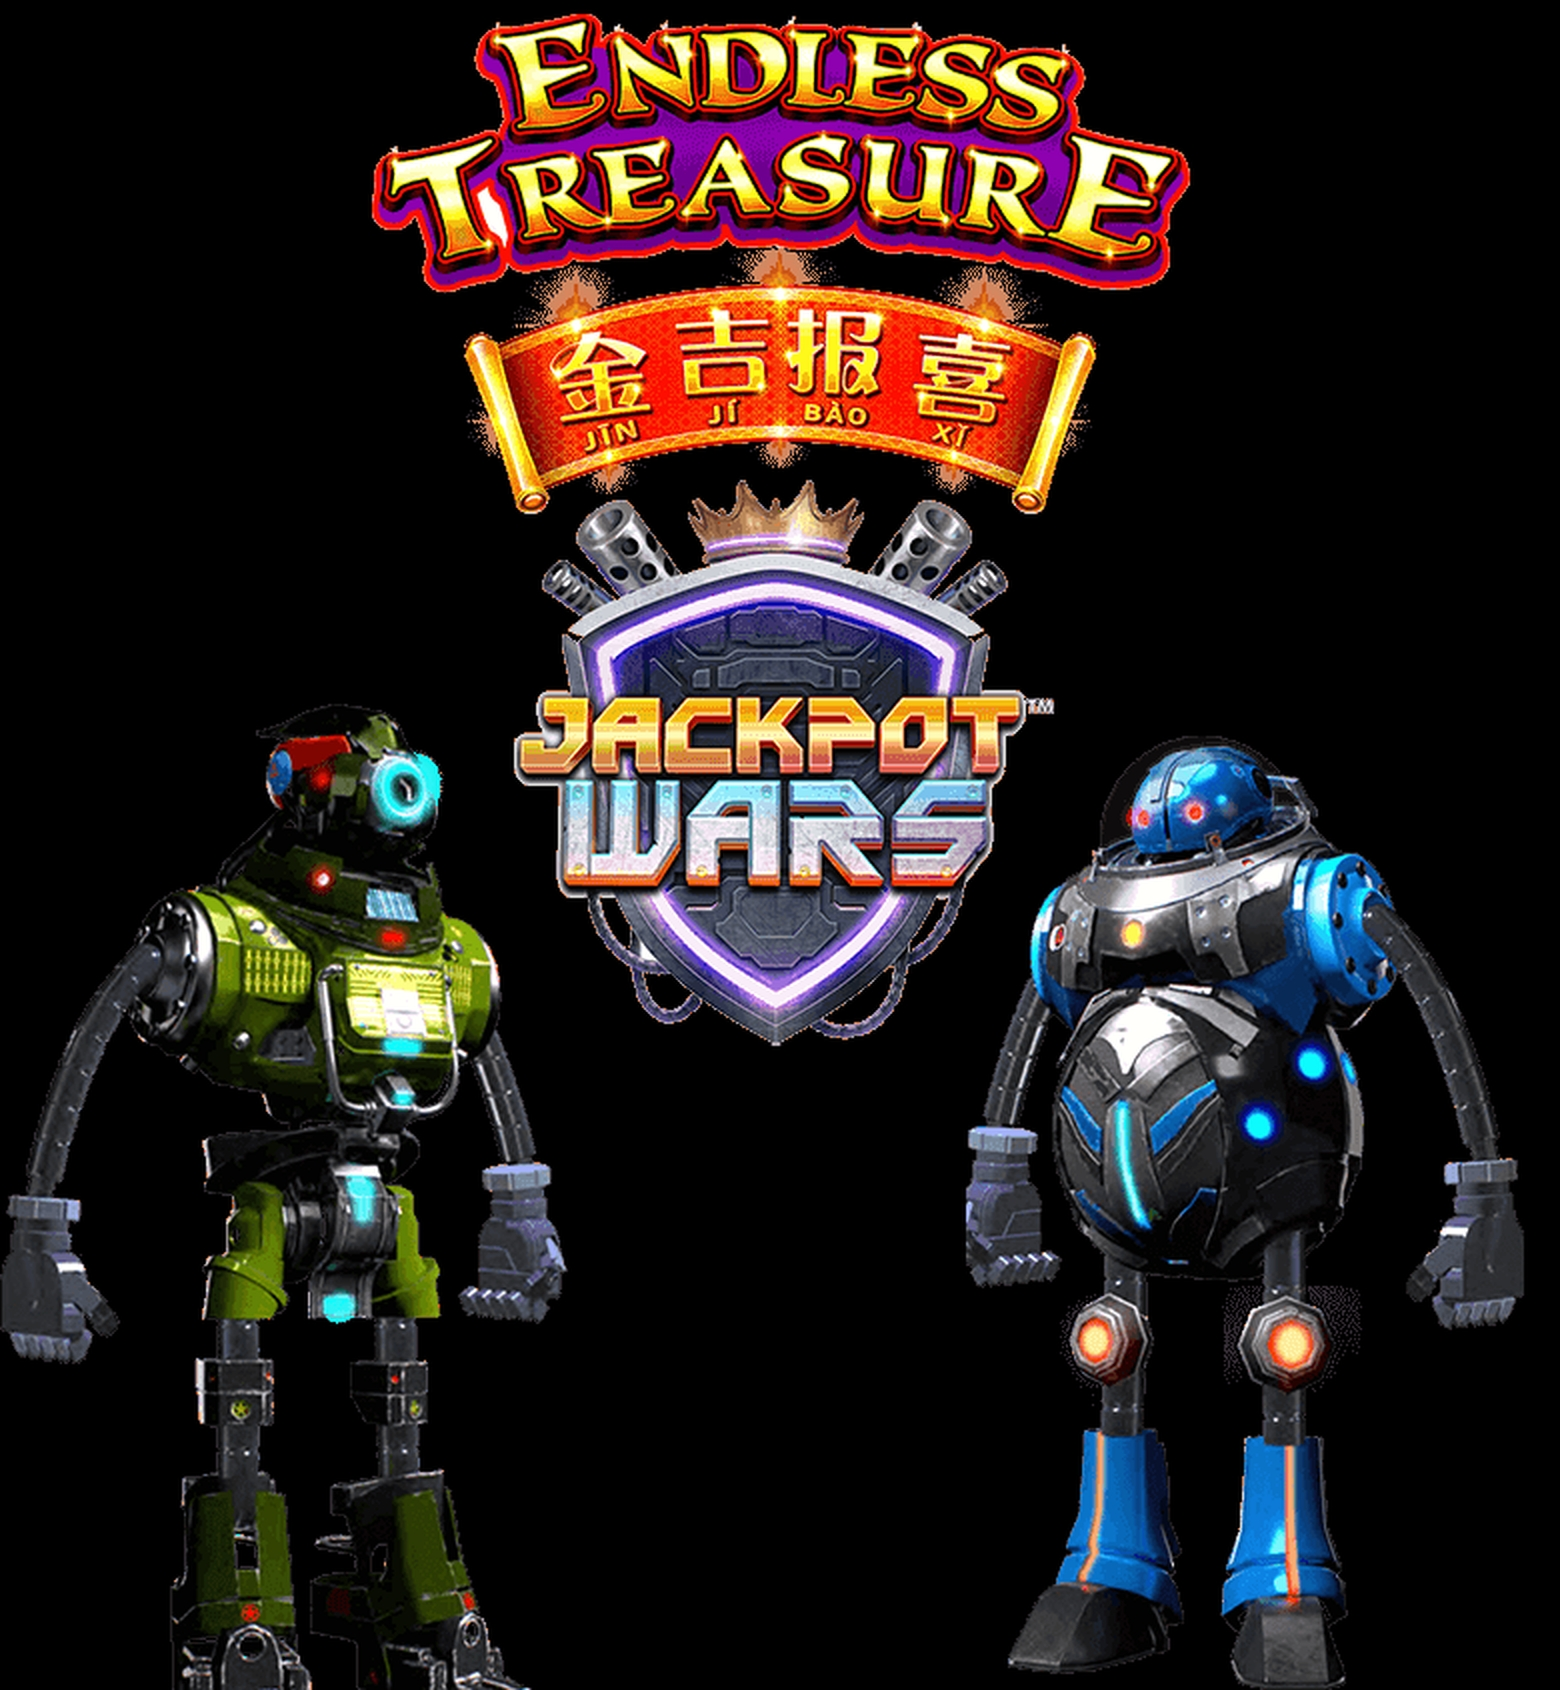 The Endless Treasure Jackpot Wars Online Slot Demo Game by SG Interactive